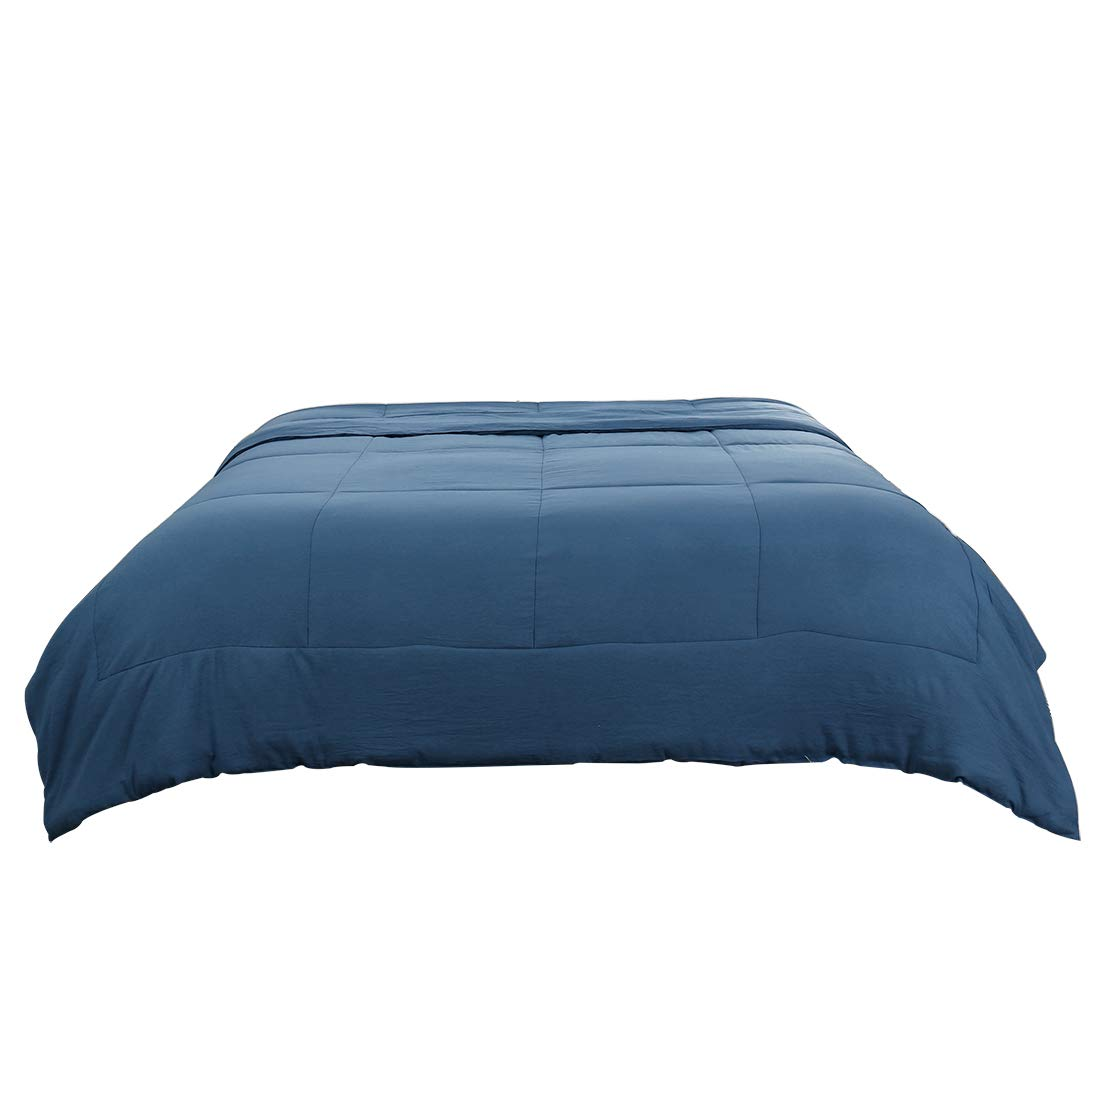 PiccoCasa Full/Queen Blue 100% Washed Cotton Quilted Comforter - Duvet Insert/Stand Along Comforter - Reversible Design - Machine Washable - 88 by 88 inches